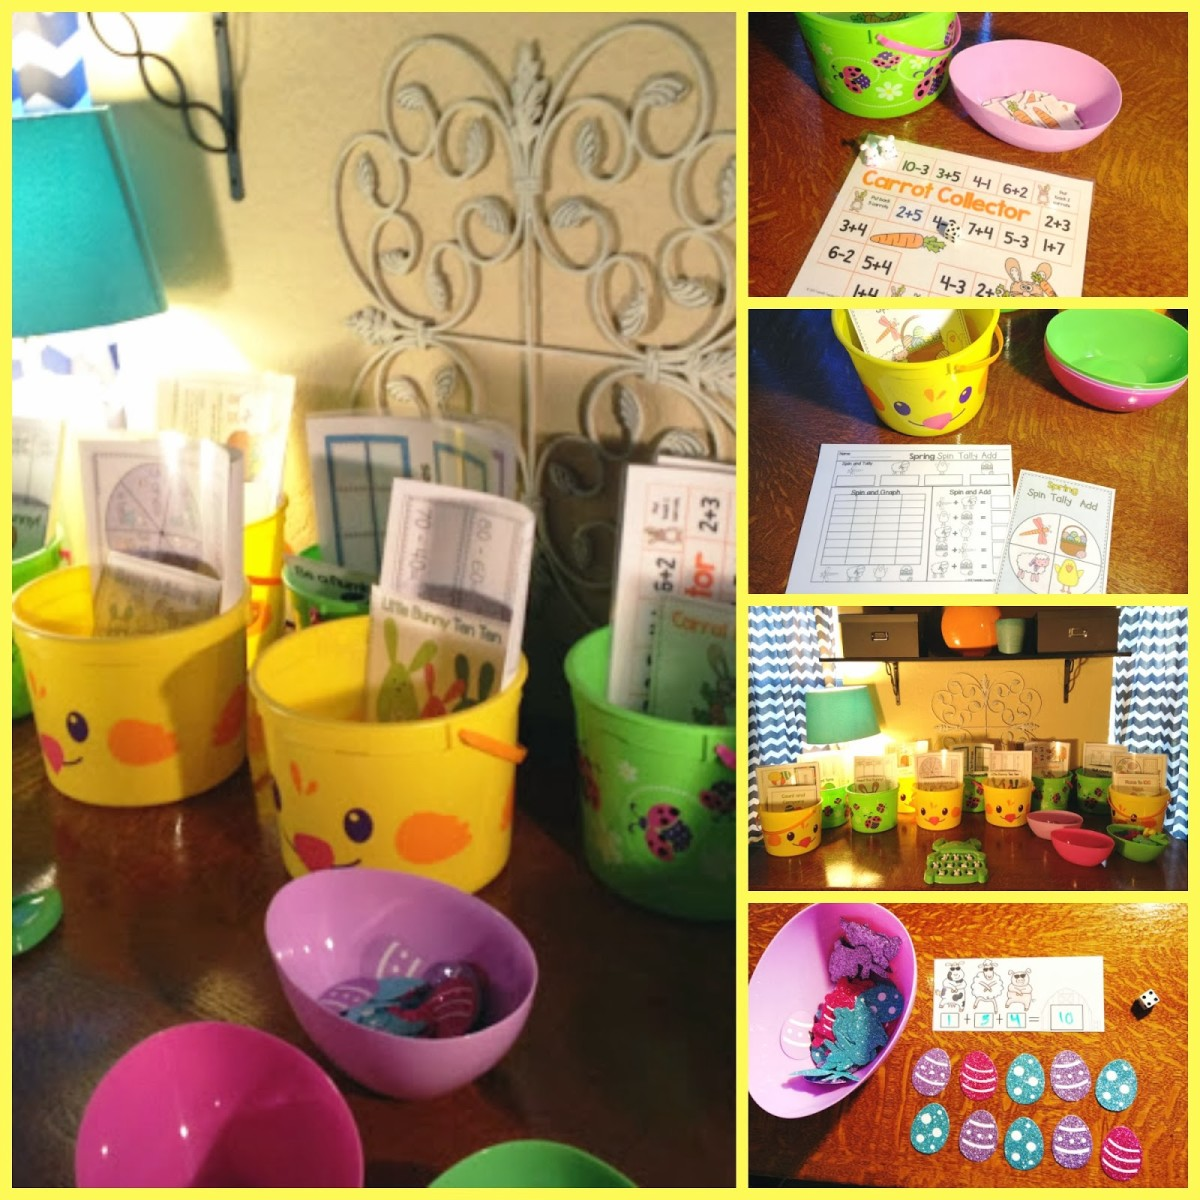 http://www.teacherspayteachers.com/Product/Spring-Centers-20-Common-Core-Math-and-Literacy-Centers-605156